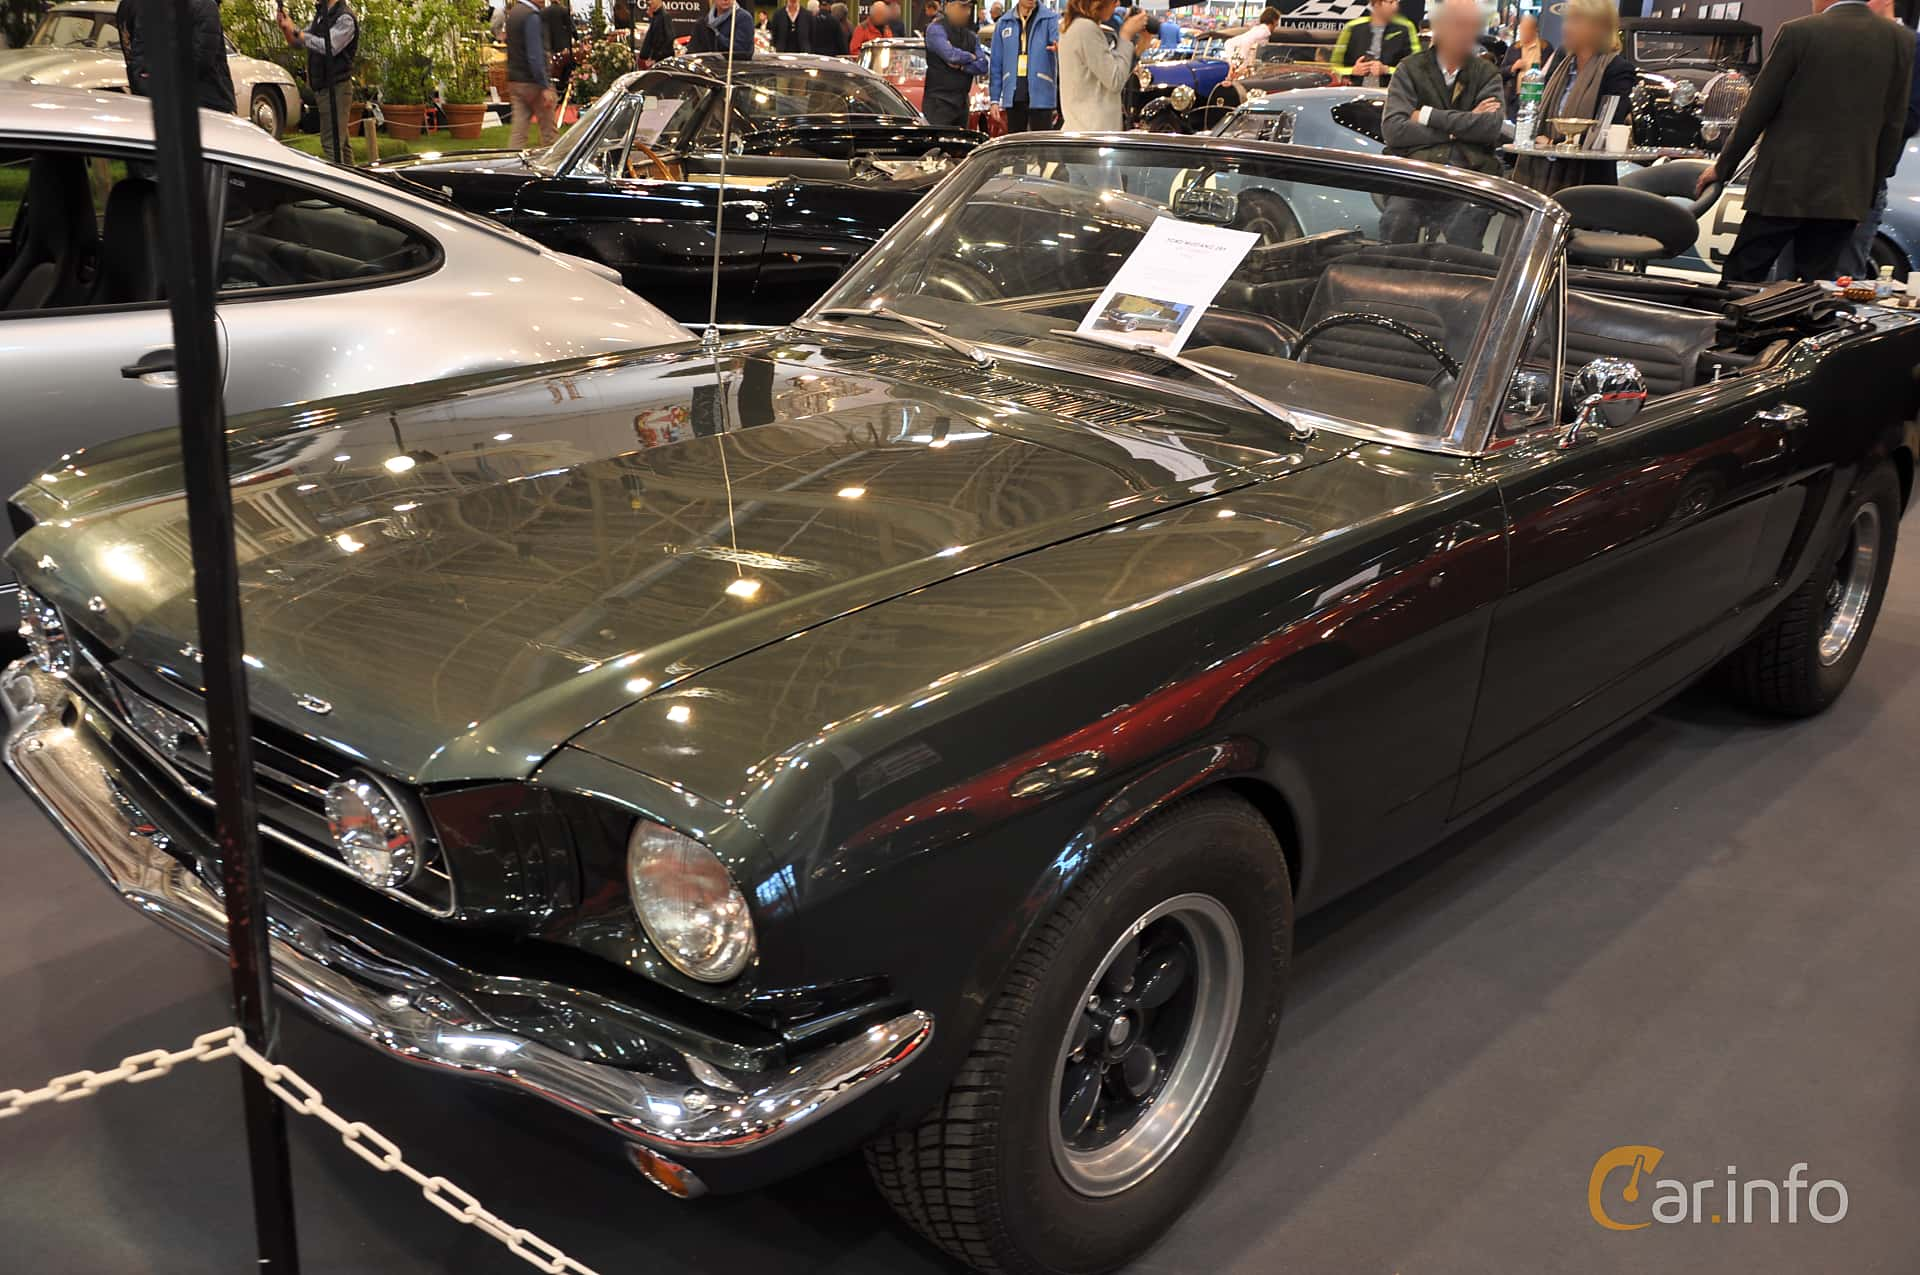 Ford Mustang GT Convertible 4.7 V8 Manual, 228hp, 1966 at Techno Classica Essen 2019